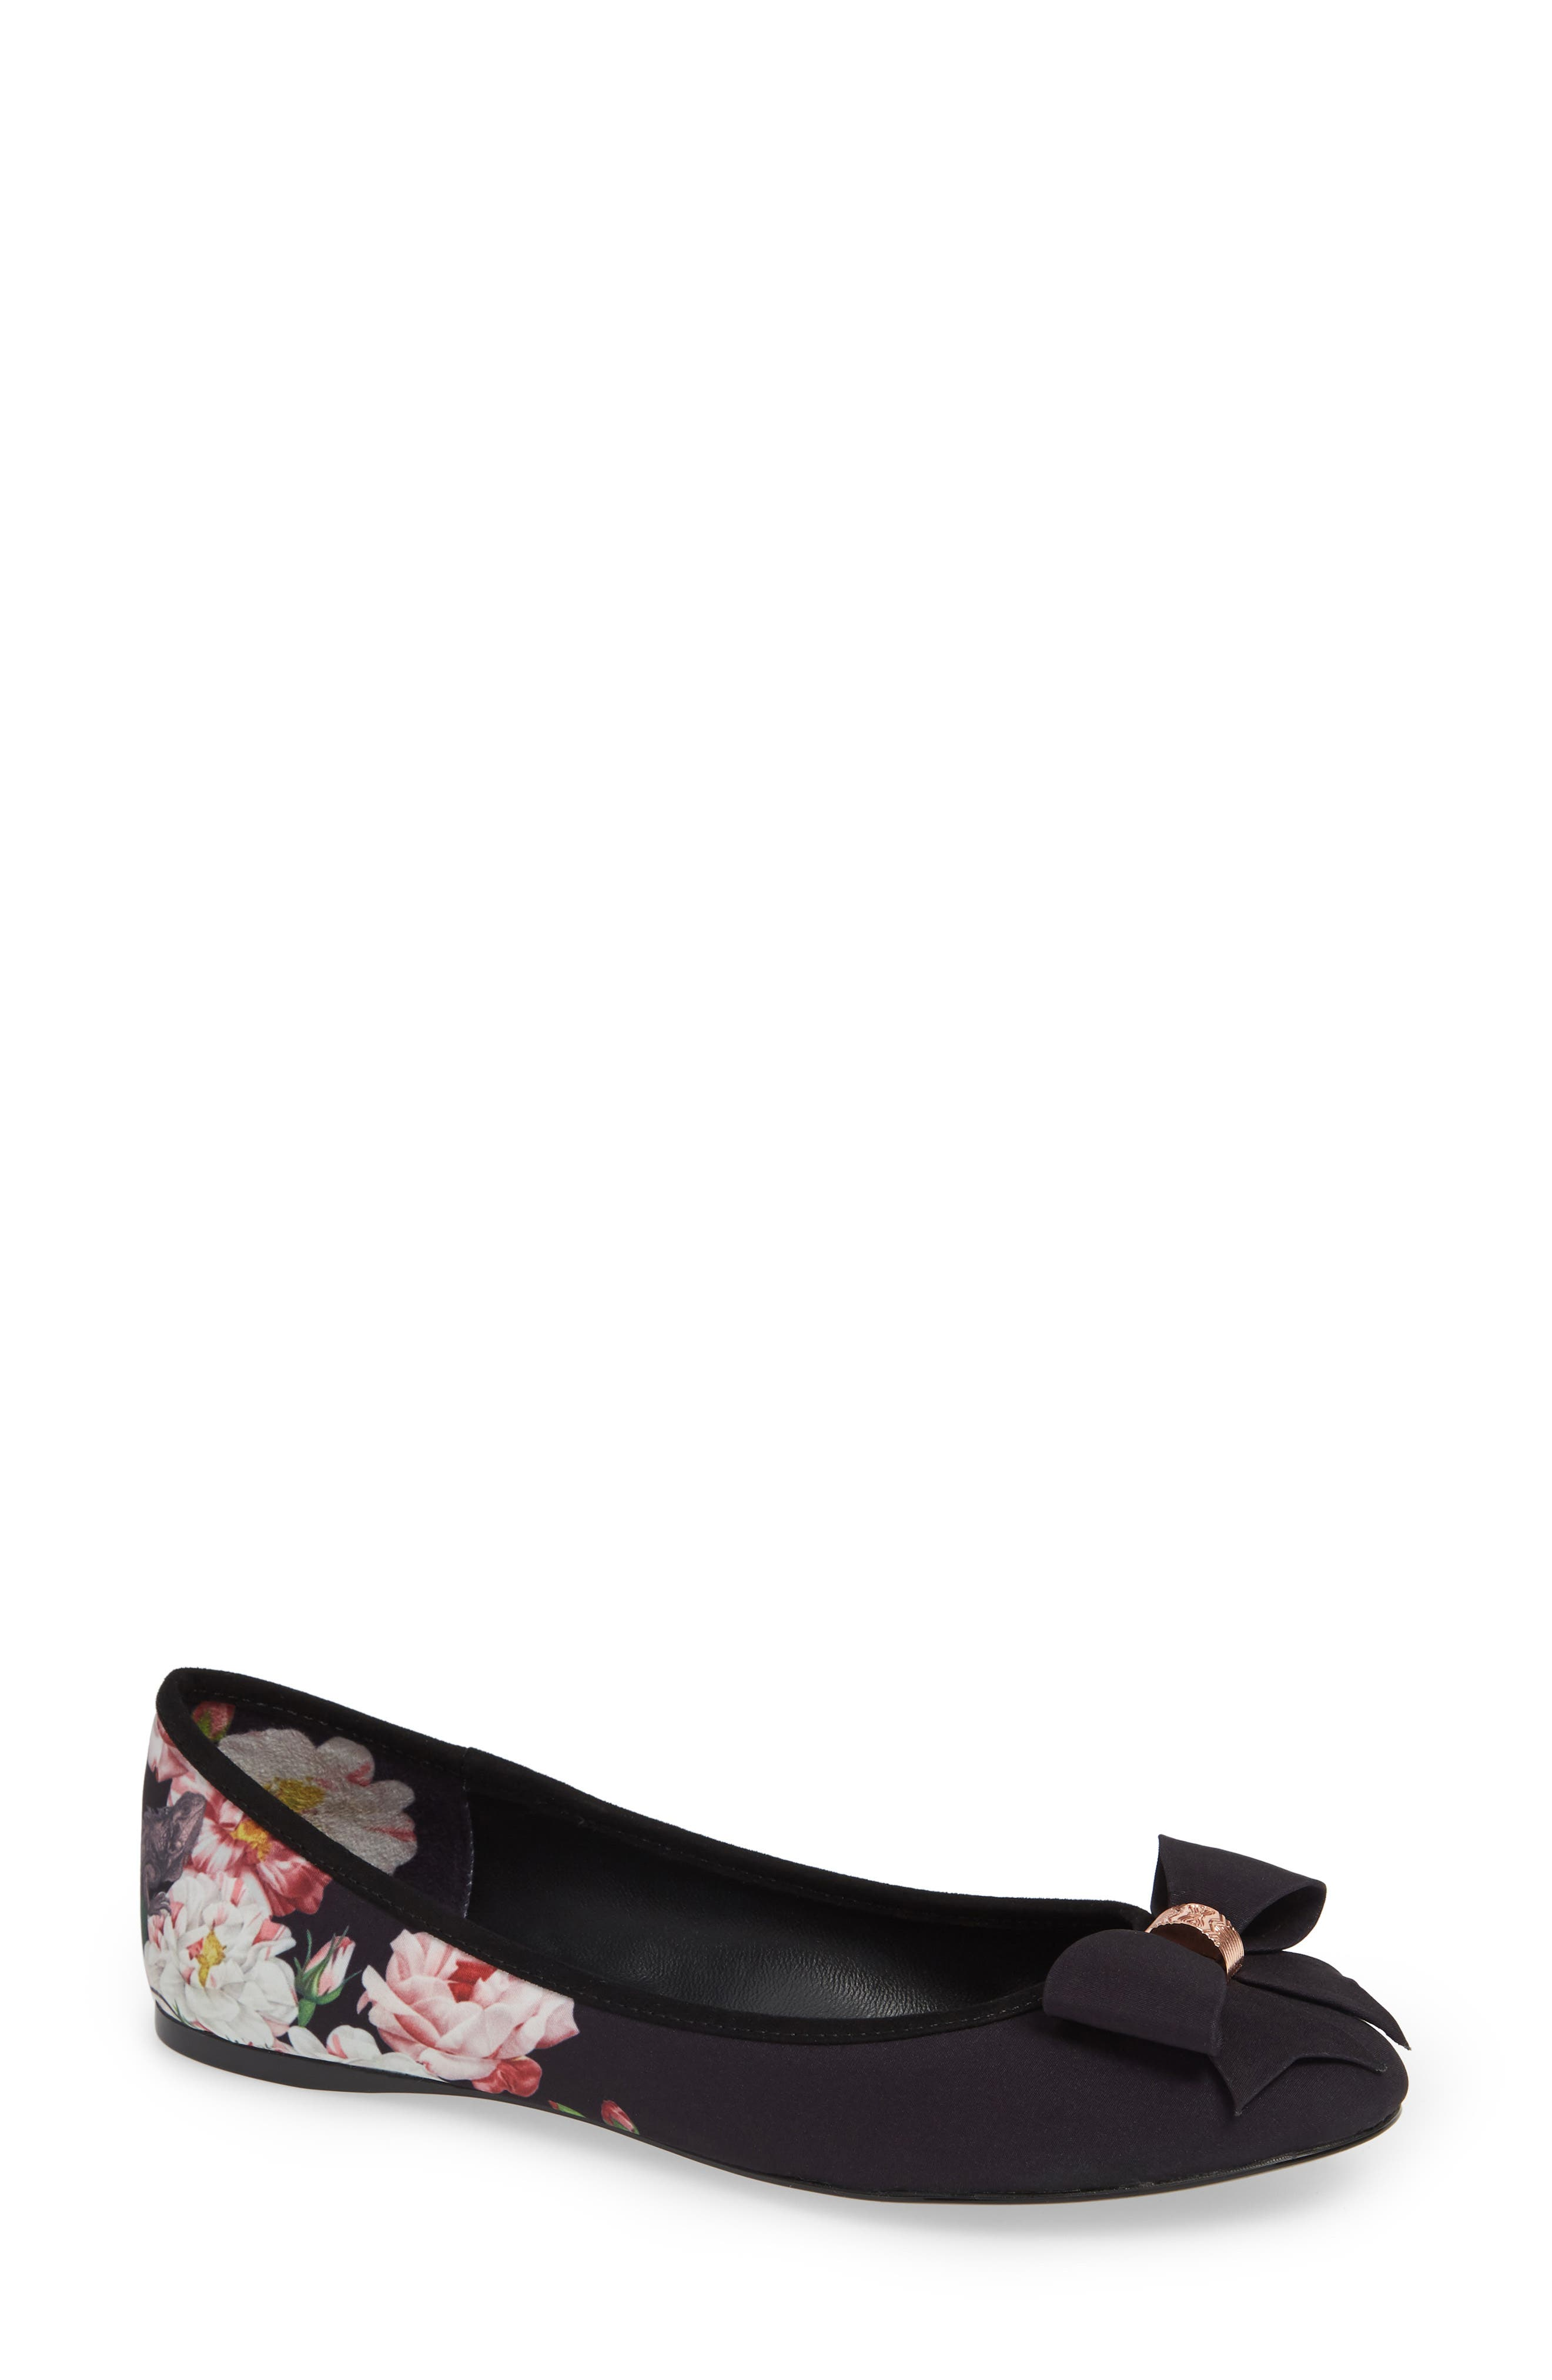 TED BAKER LONDON Sualli Flat, Main, color, 001